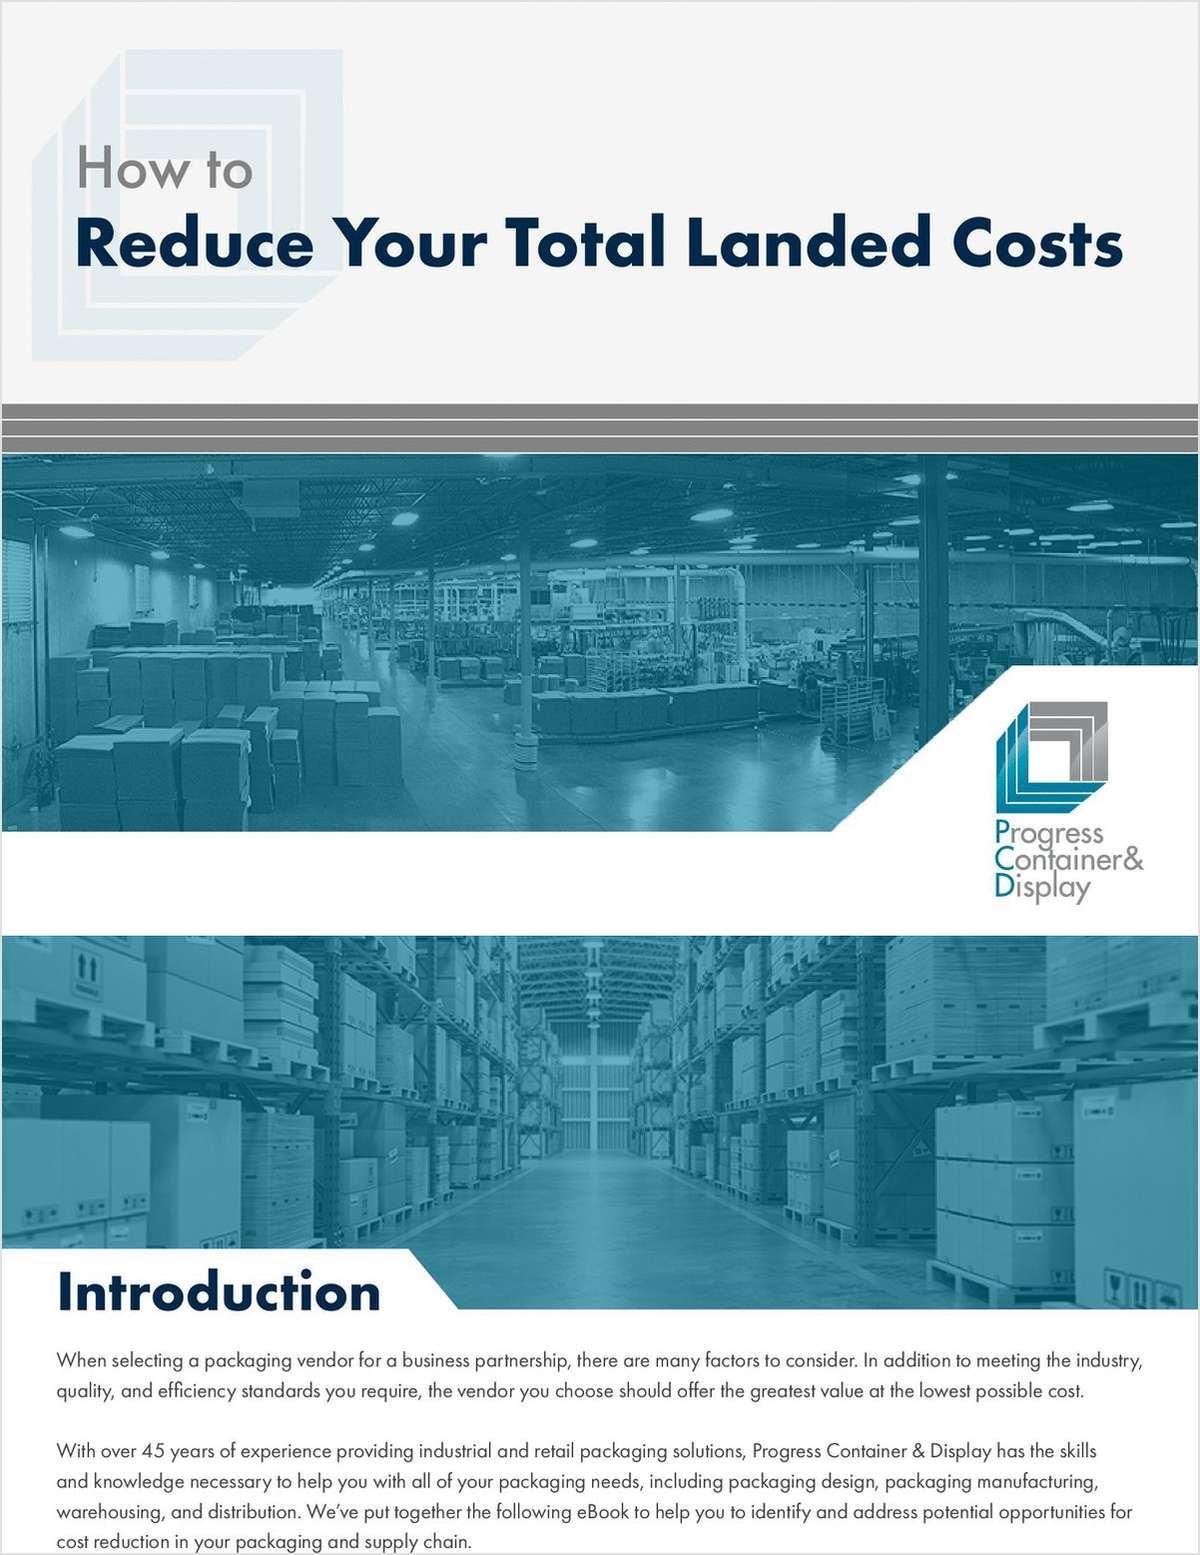 How to Reduce Your Total Landed Costs